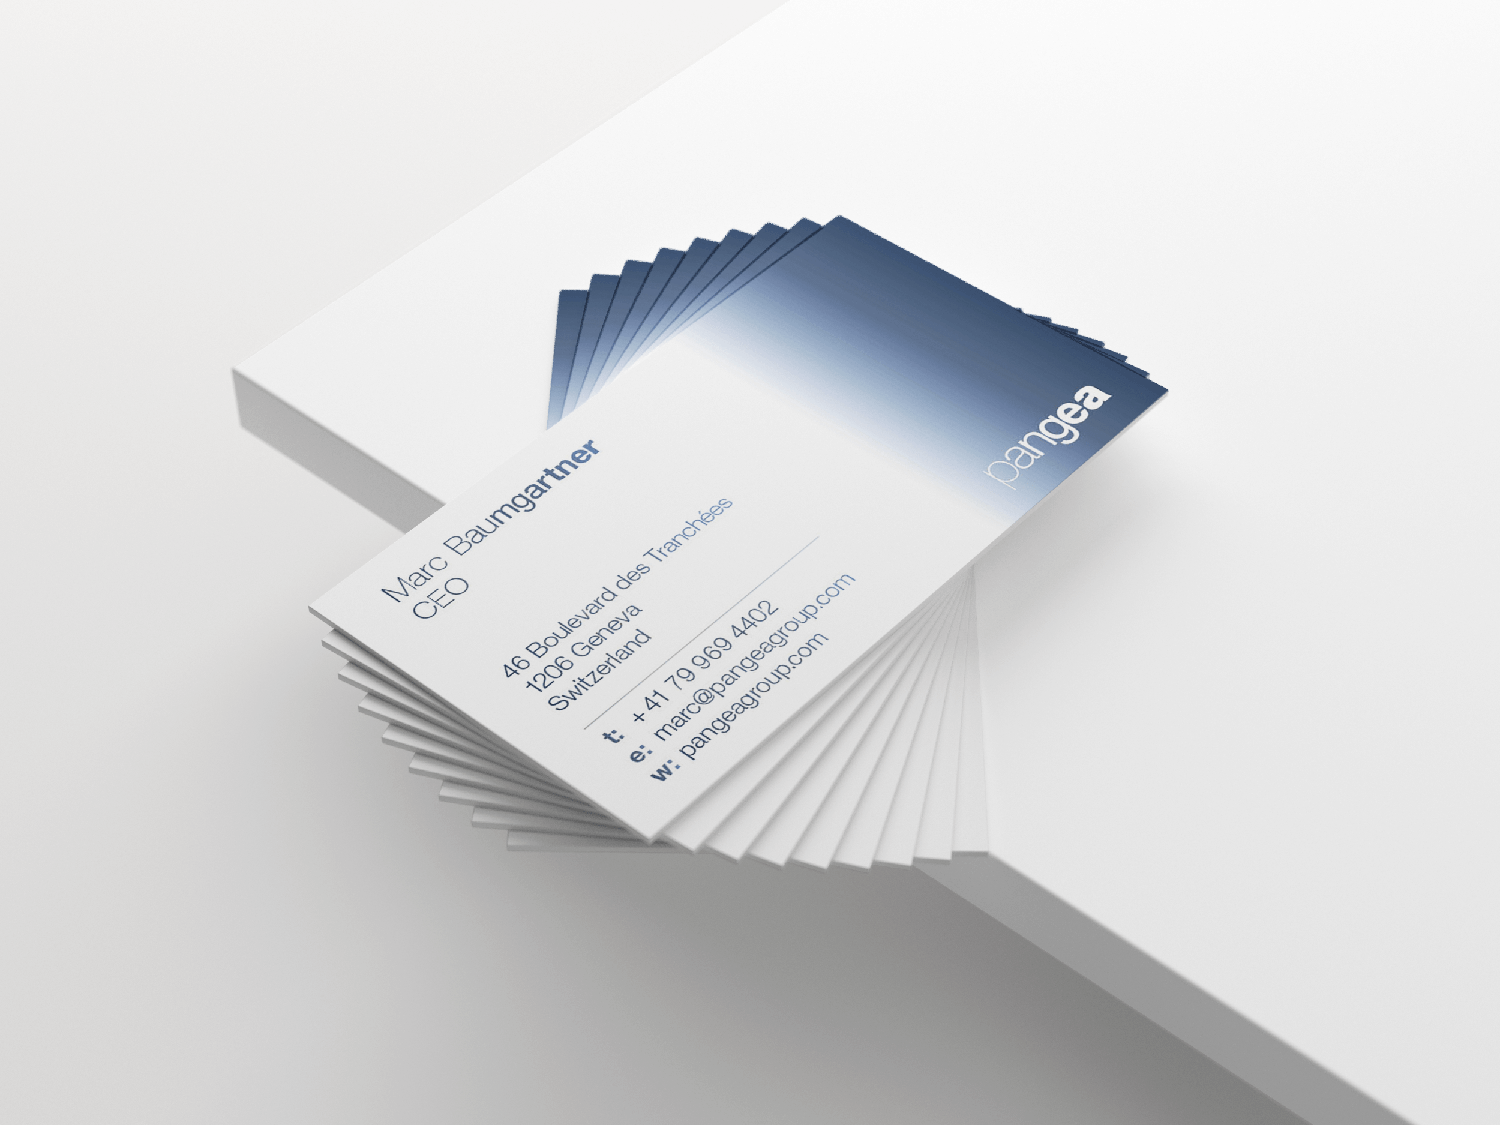 Business_Card_Mockup_4_smaller.png